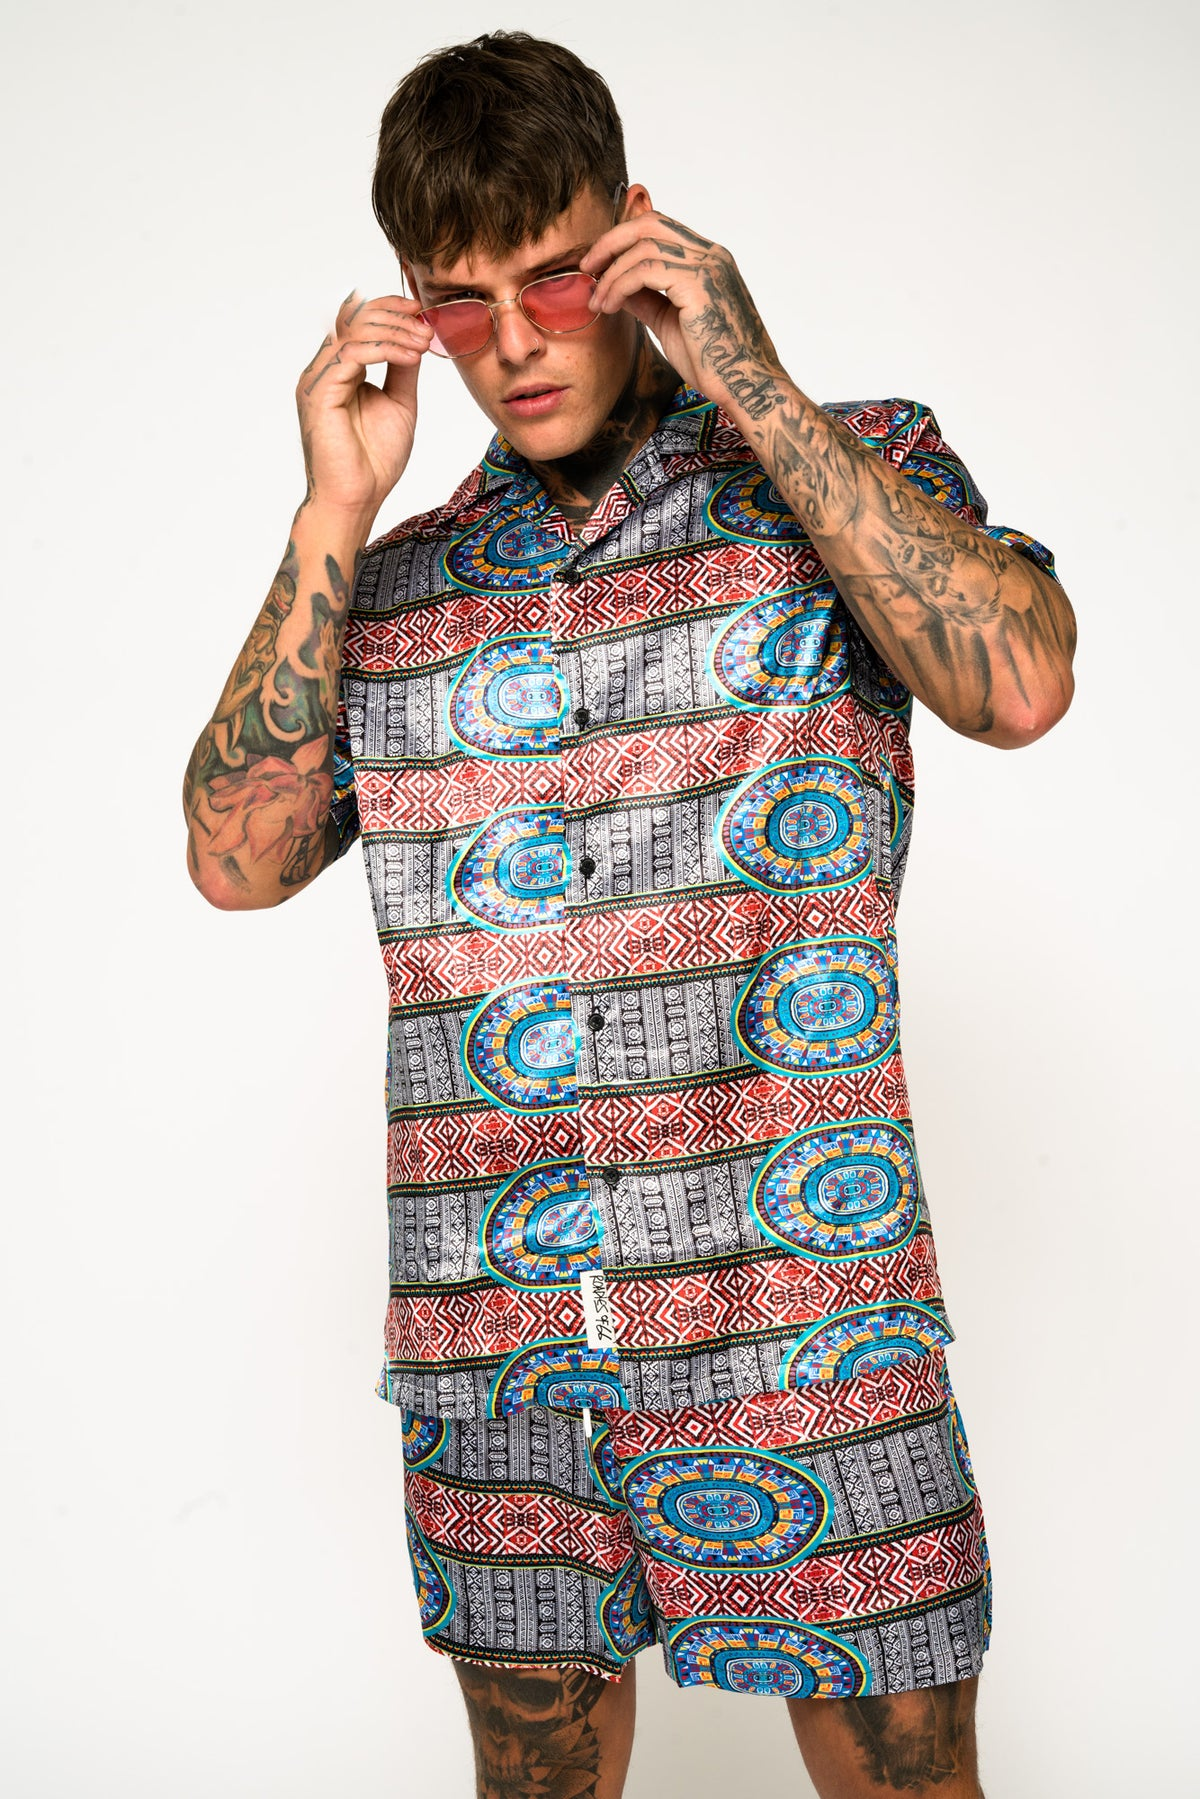 Roadies of 66 - Aztec Print Revere Collar Shirt